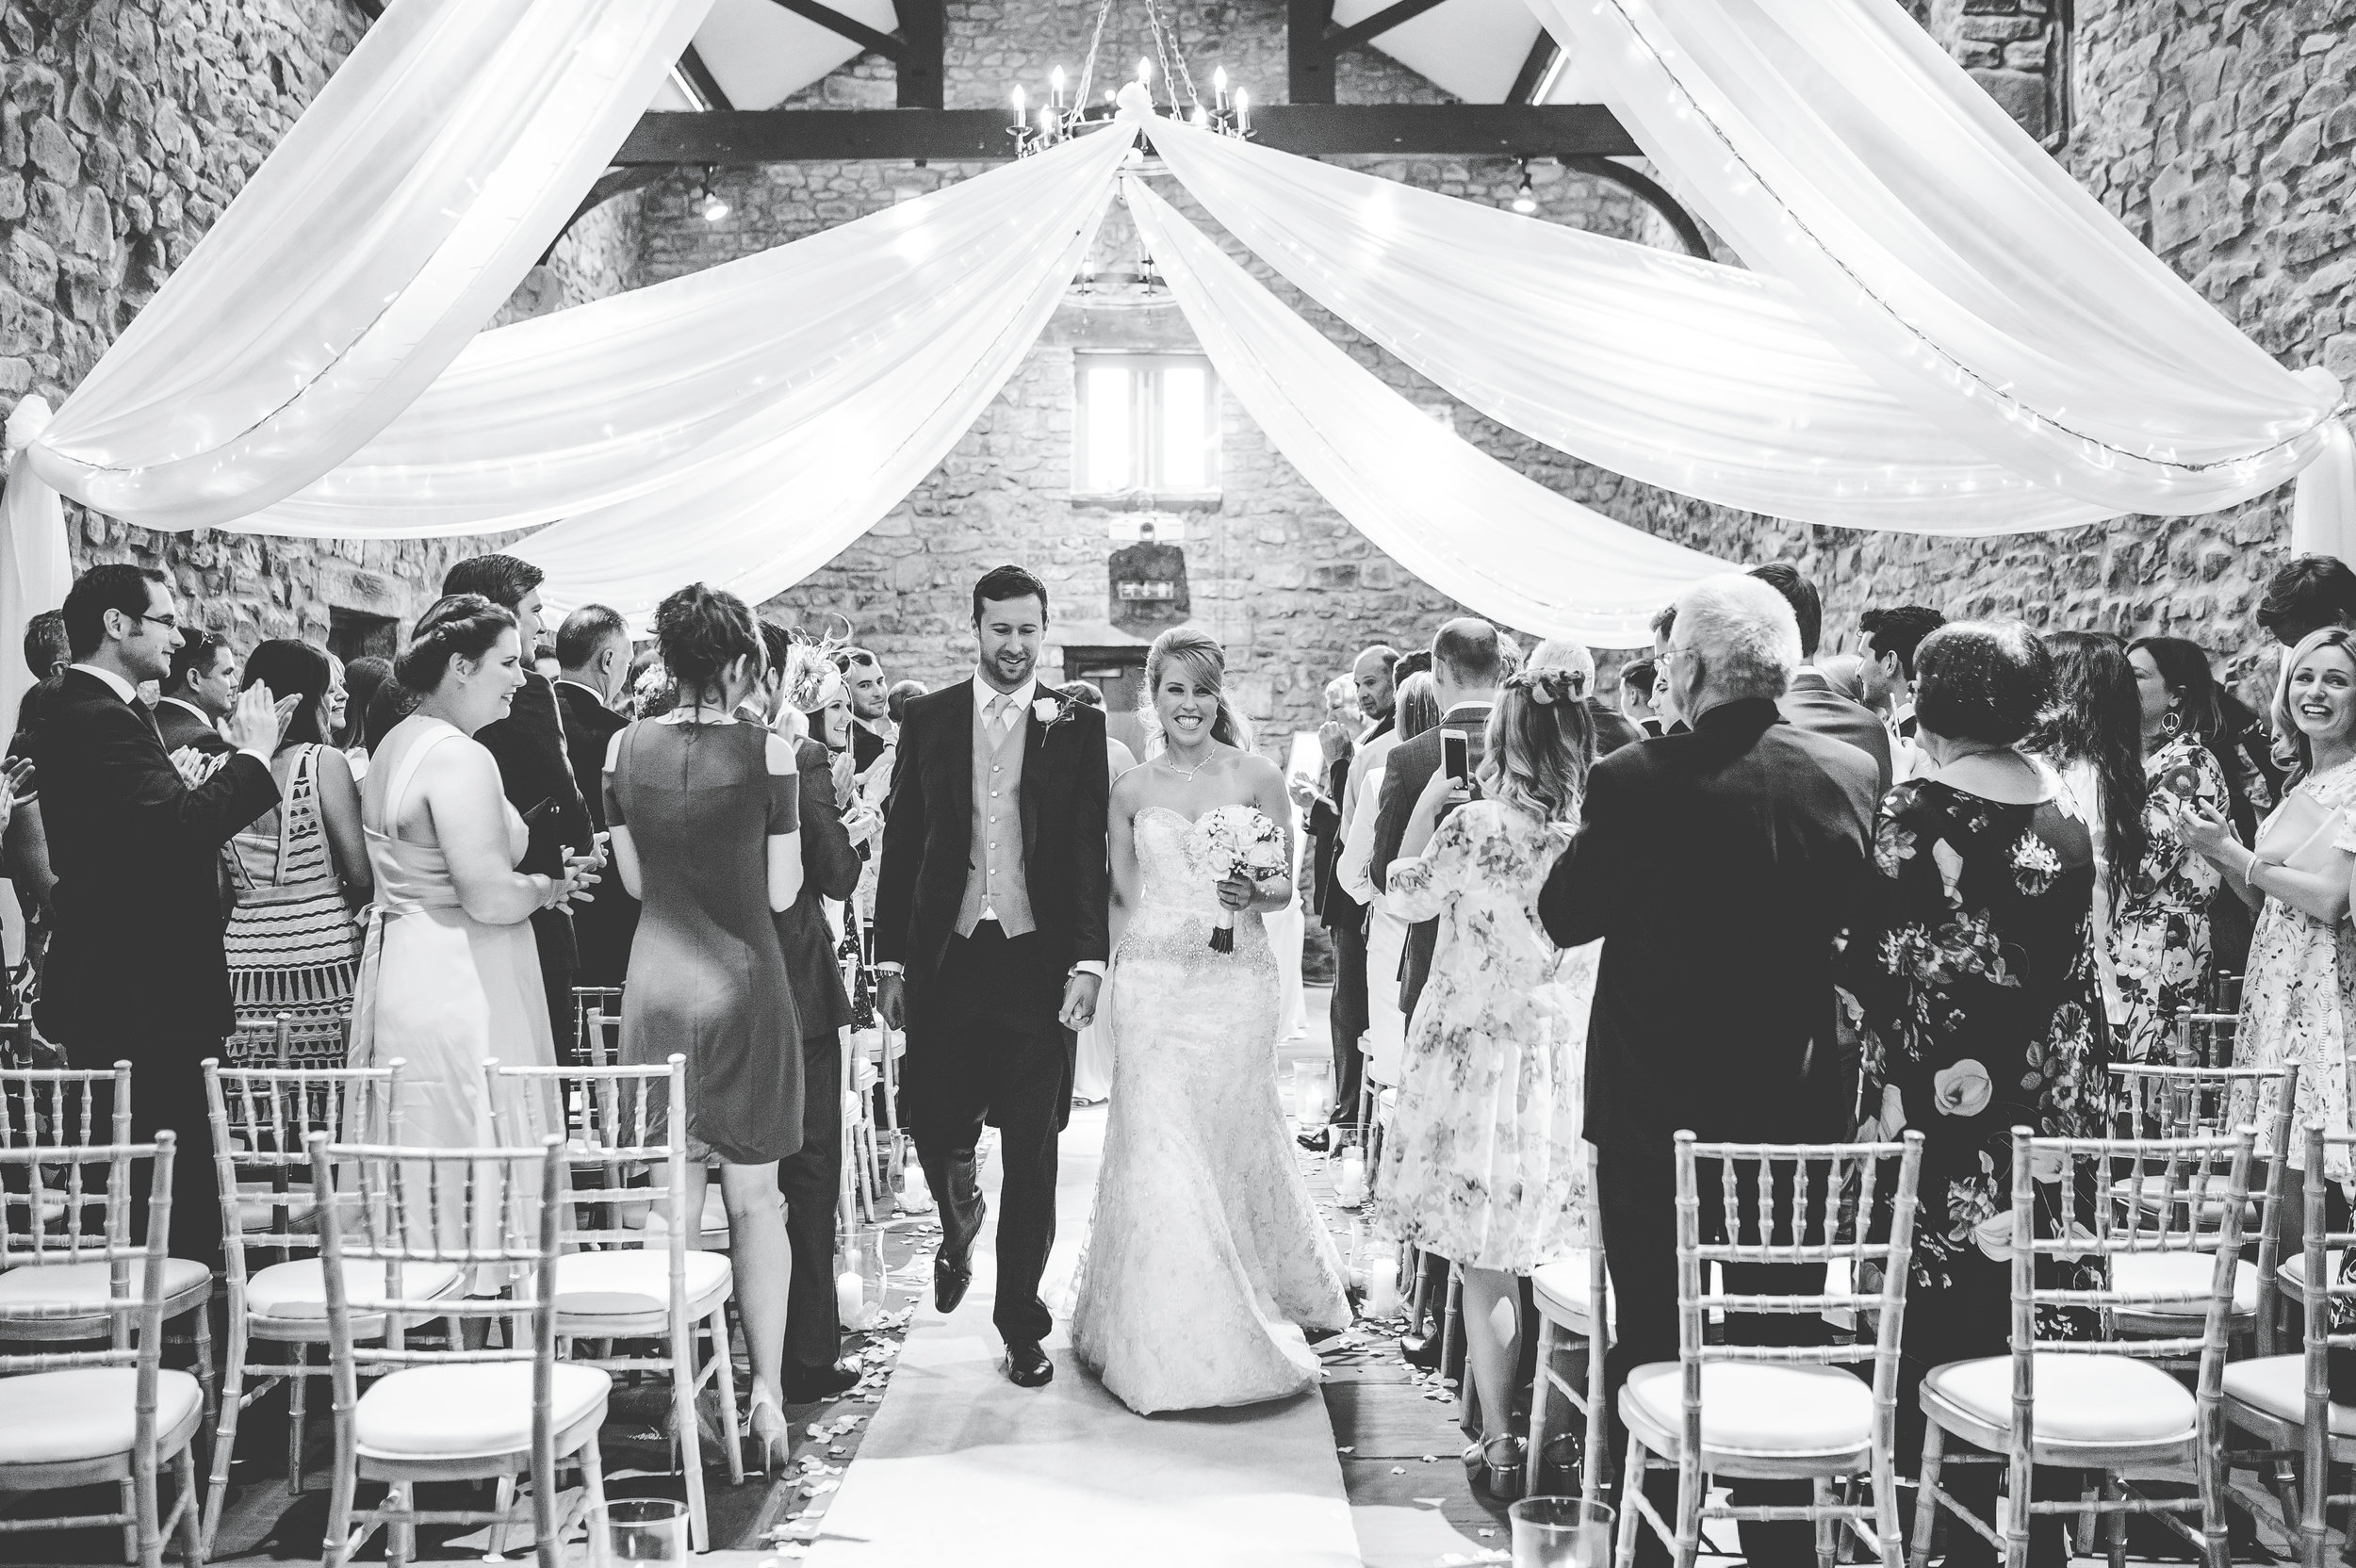 newlyweds walking down the aisle at Browsholme Hall wedding